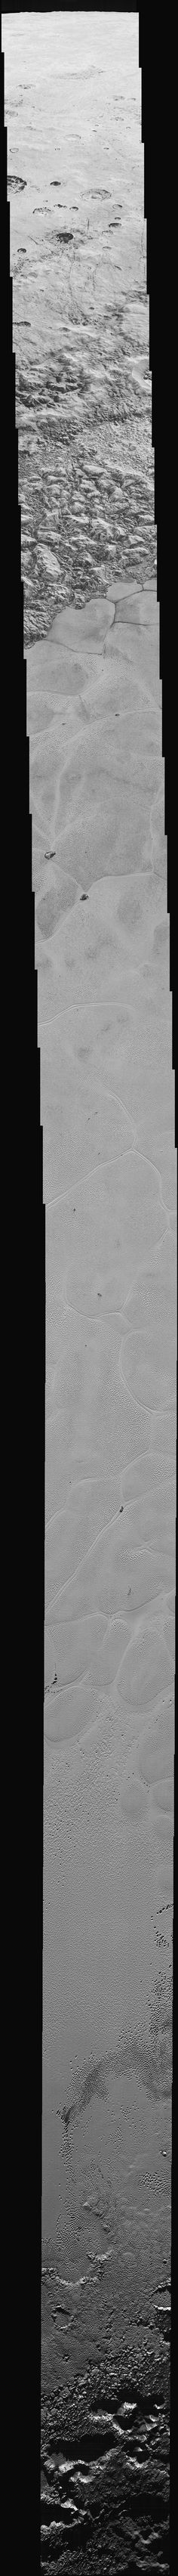 Pluto Mosaic by nasa: New Horizons captured the images from a distance of about 9,850 miles (15,850 kilometers) on July 14, 2015, 23 minutes before the probe's closest approach to Pluto (which brought it to within 7,800 miles, or 12,550 km, of the dwarf planet's surface). - See more at: http://www.space.com/33020-pluto-best-images-new-horizons-video.html#sthash.rUZ2PAMO.dpuf #Space #Pluto